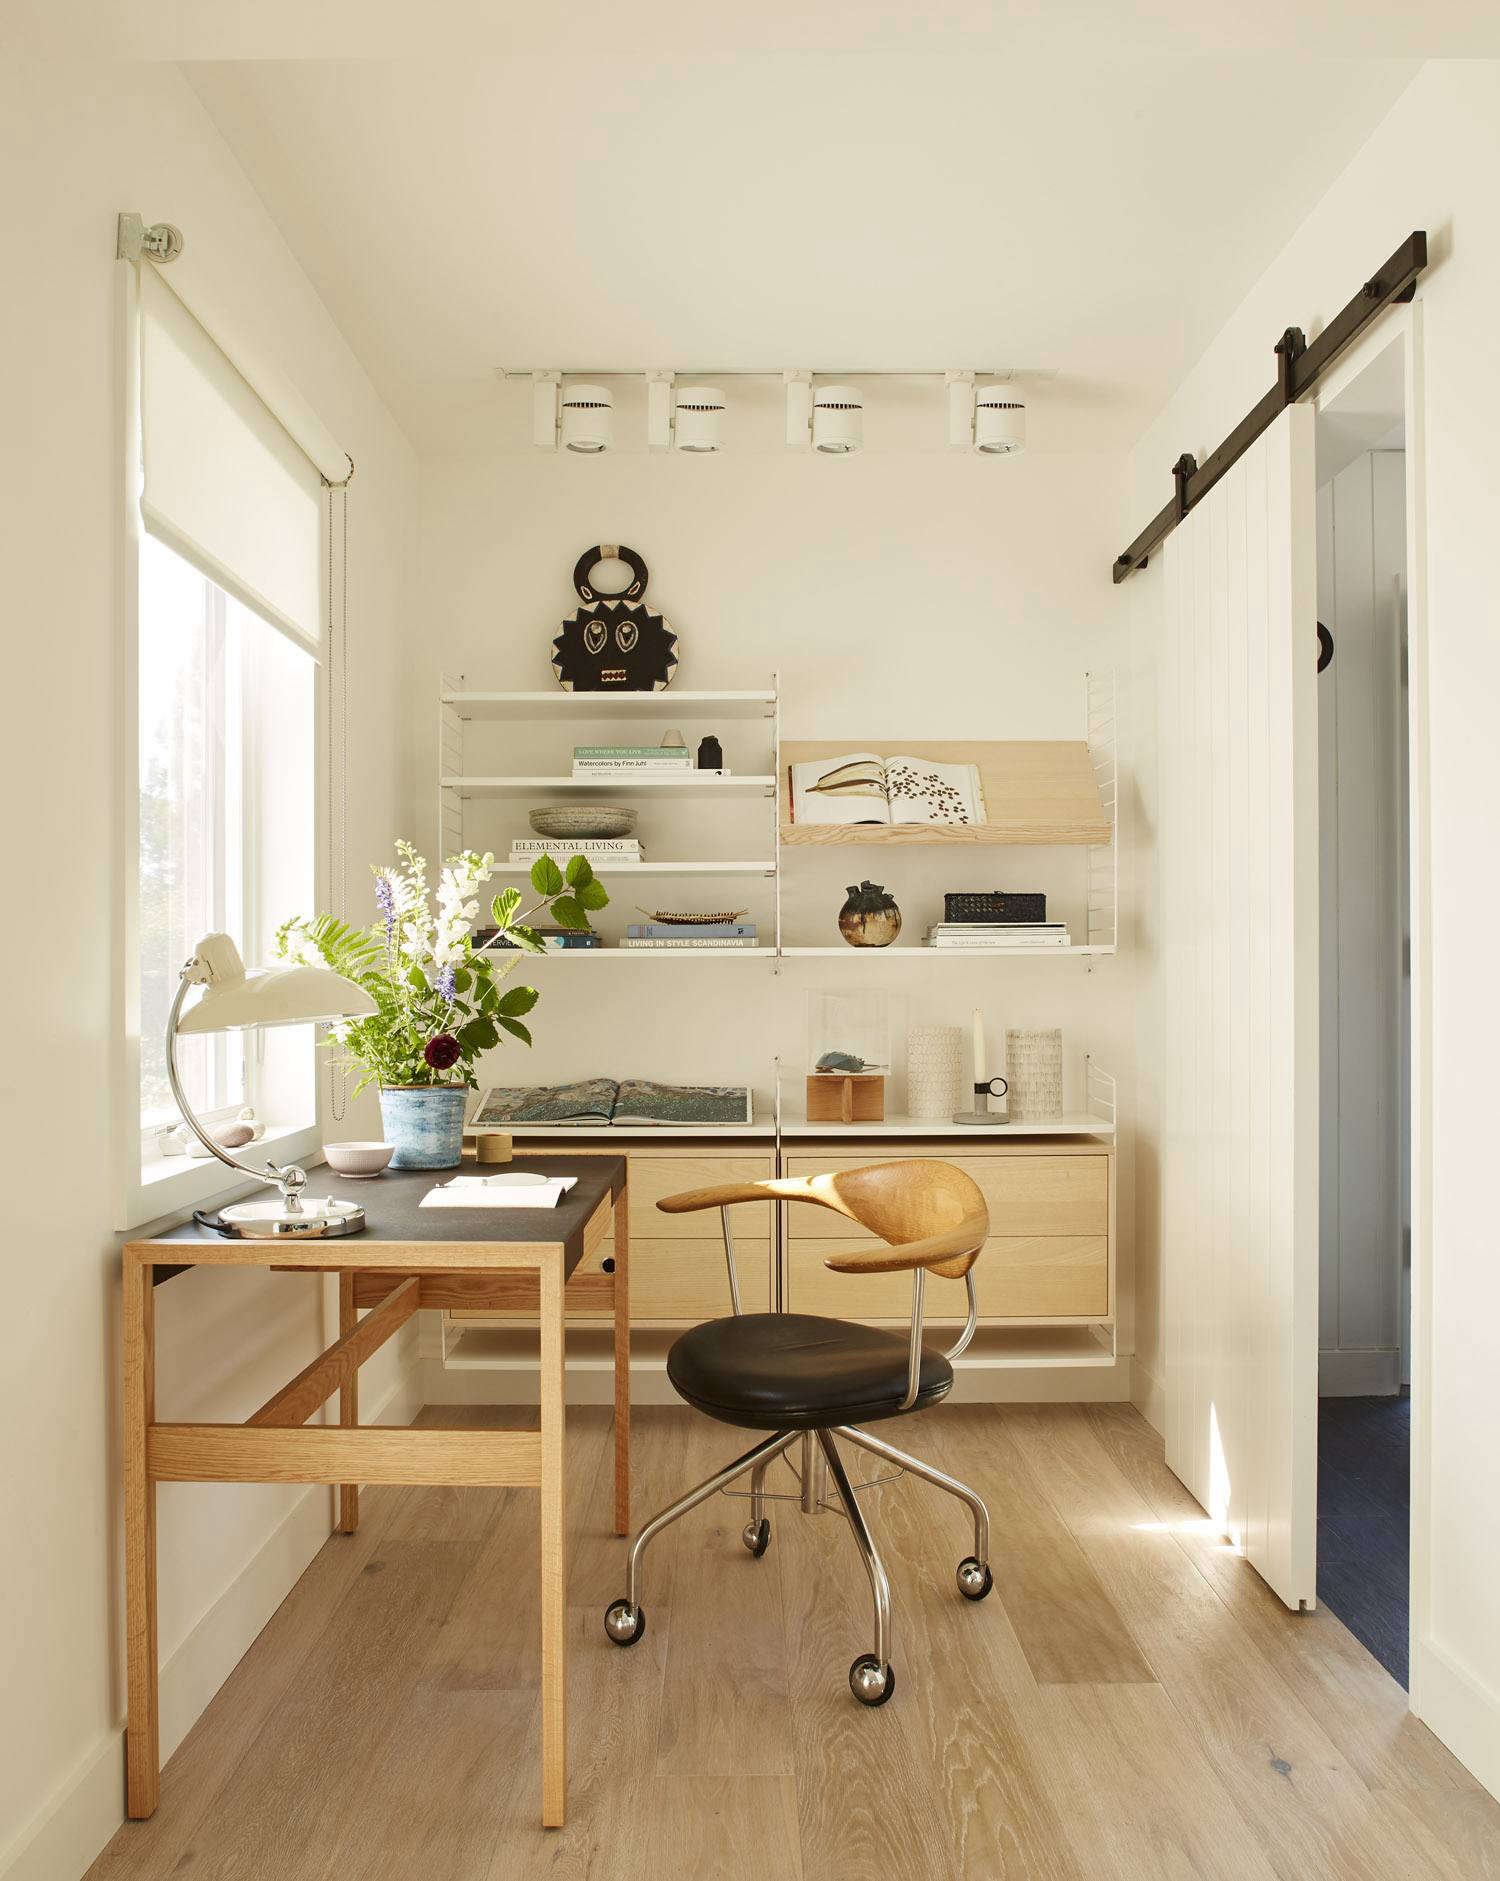 Steal This Look: A Pocket Home Office with Modern, Scandi Influence